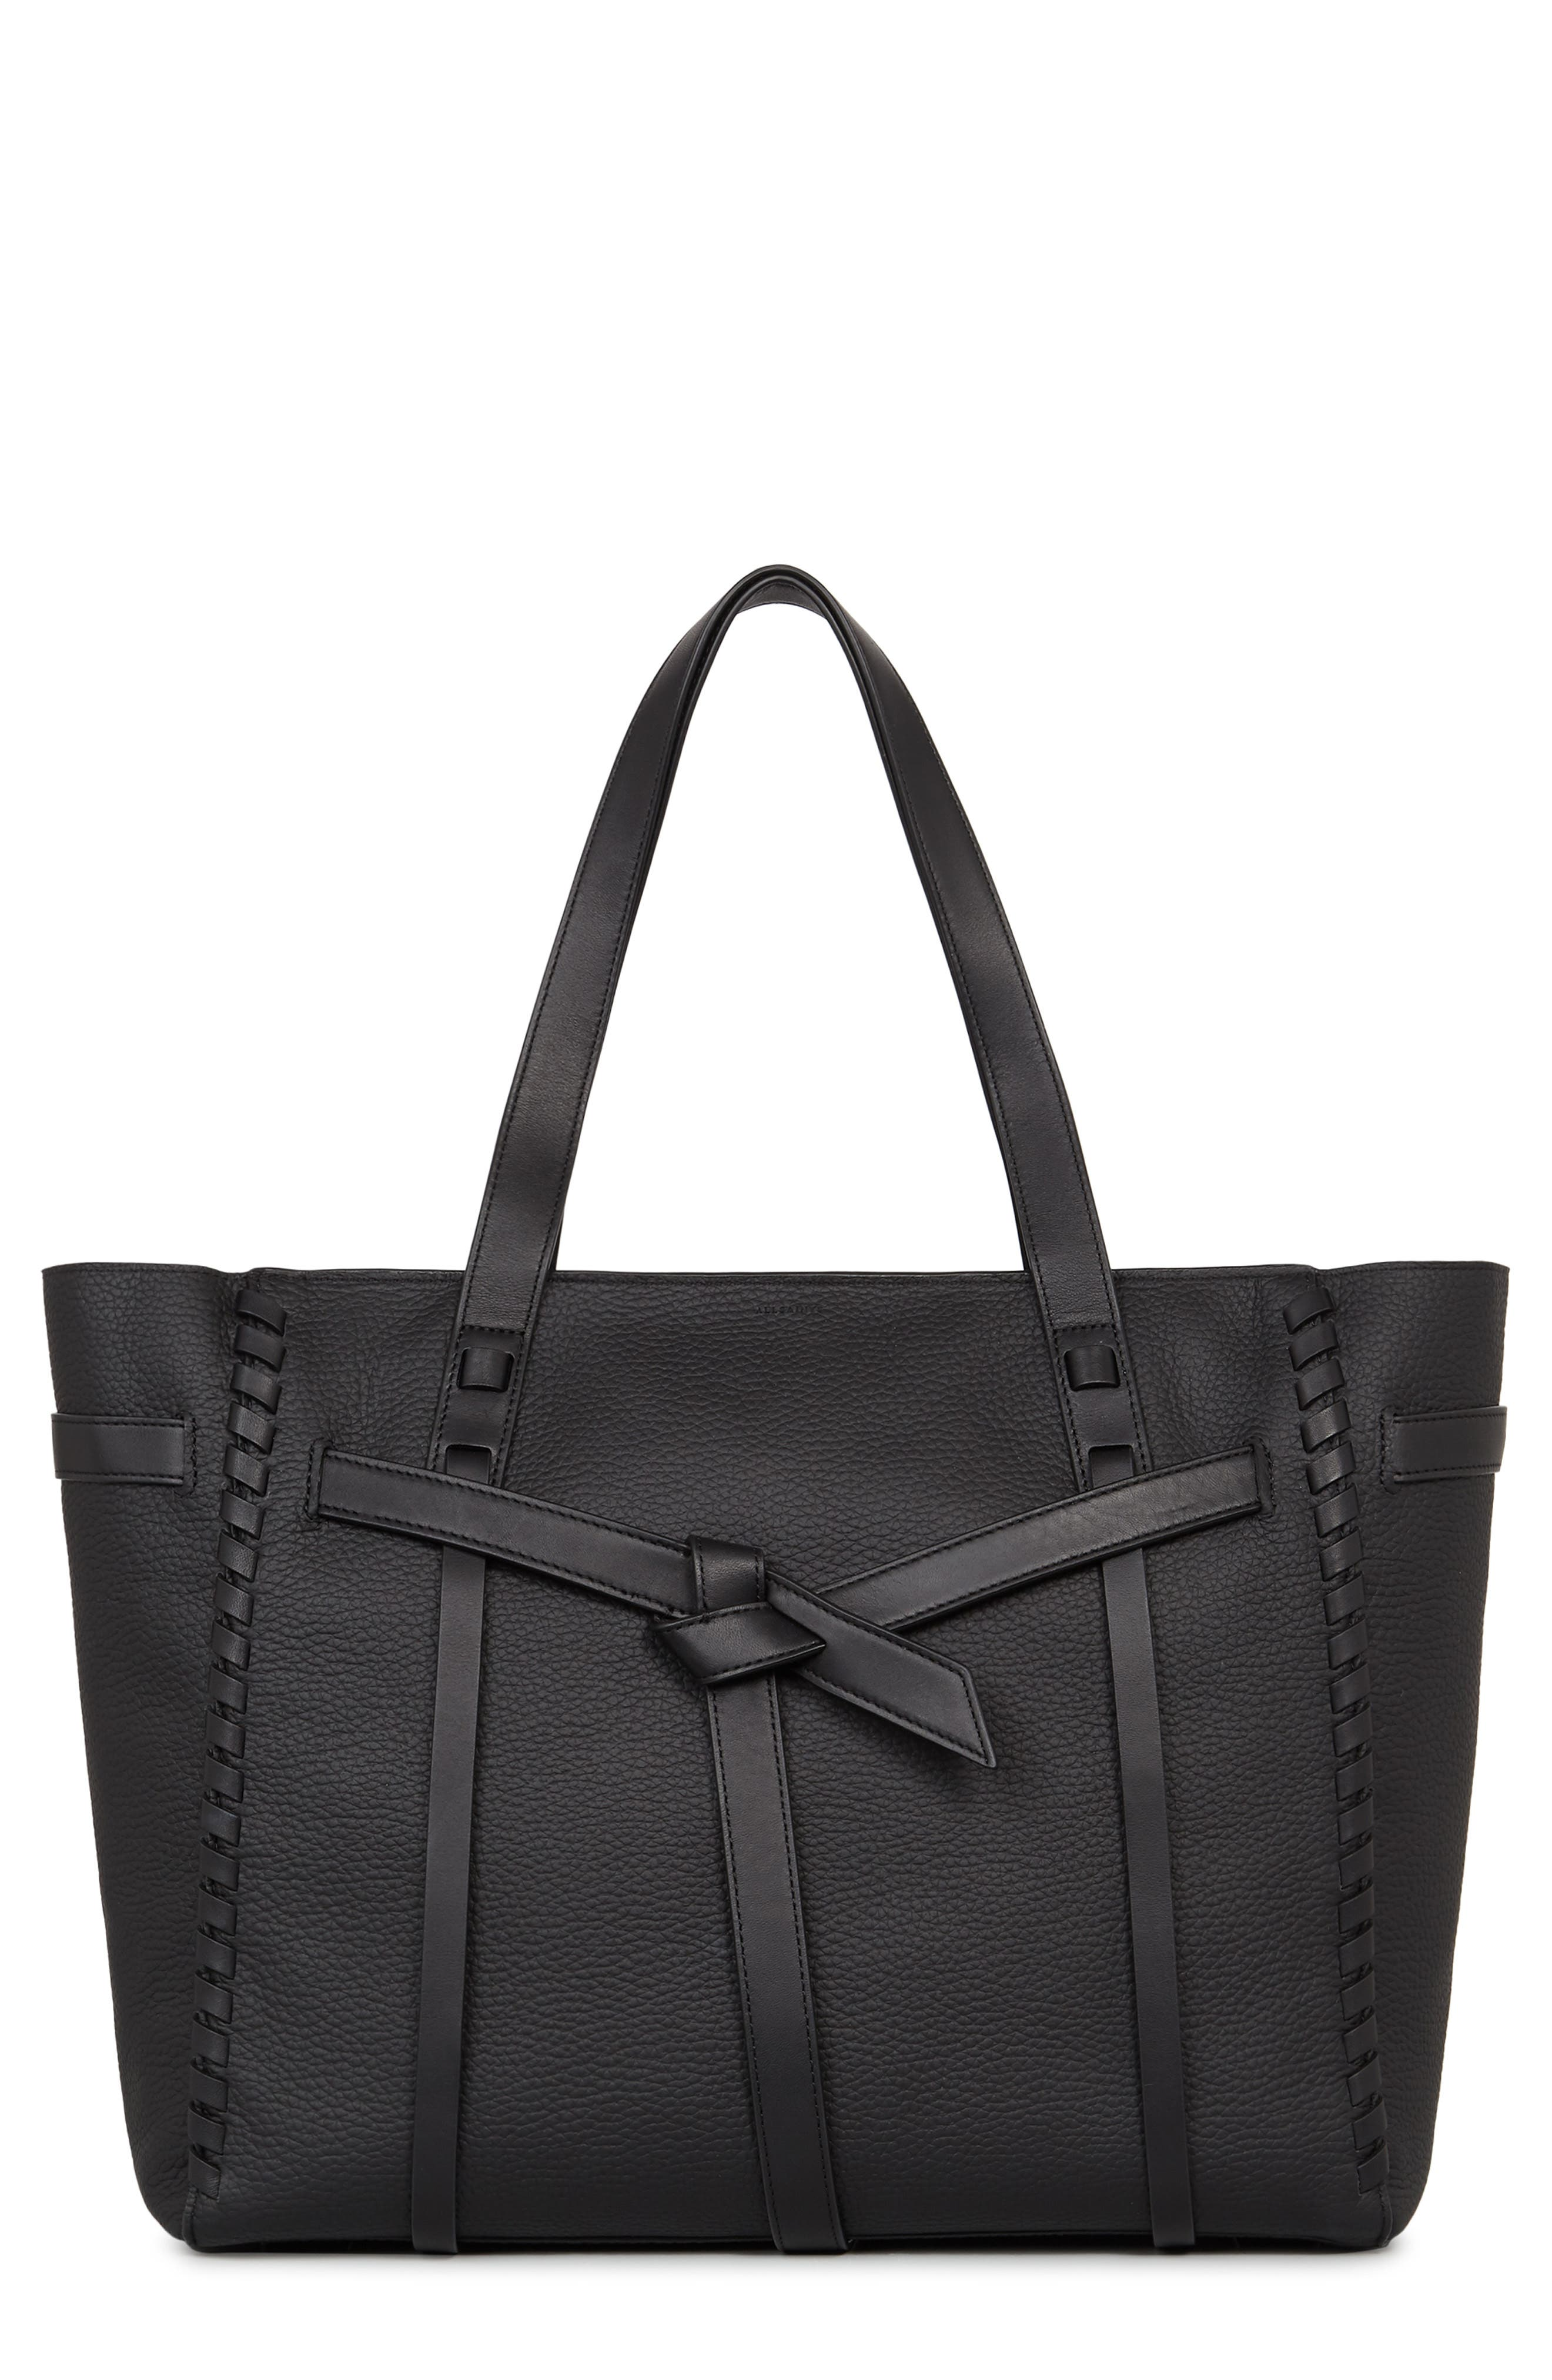 ALLSAINTS Cami East/West Leather Tote, Main, color, 004